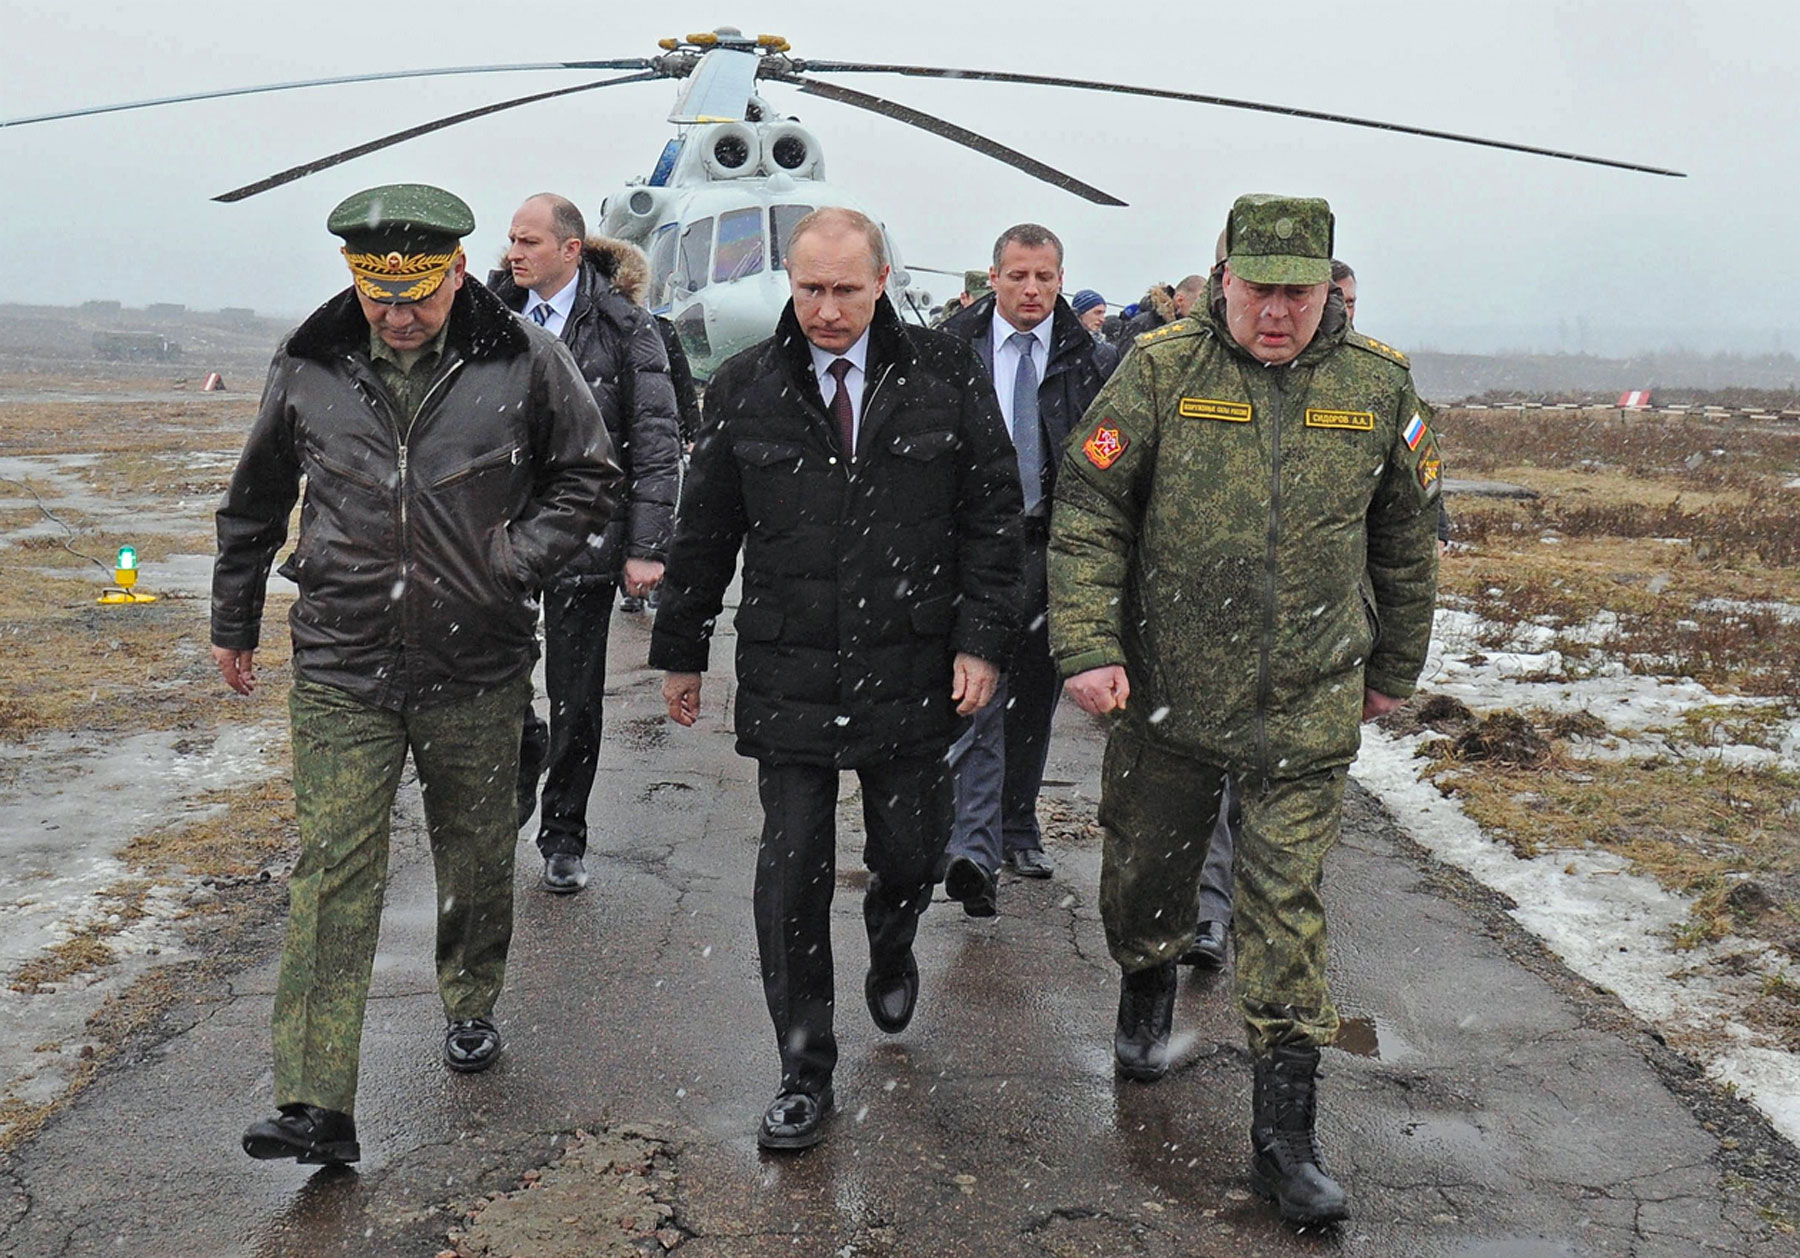 From left: Russia's defence minister Sergei Shoigu, president Vladimir Putin, and commander of the Russian Western Military District Troops Anatoly Sidorov arrive at the Kirillovsky training ground to watch military exercises on Mar.3, 2014.